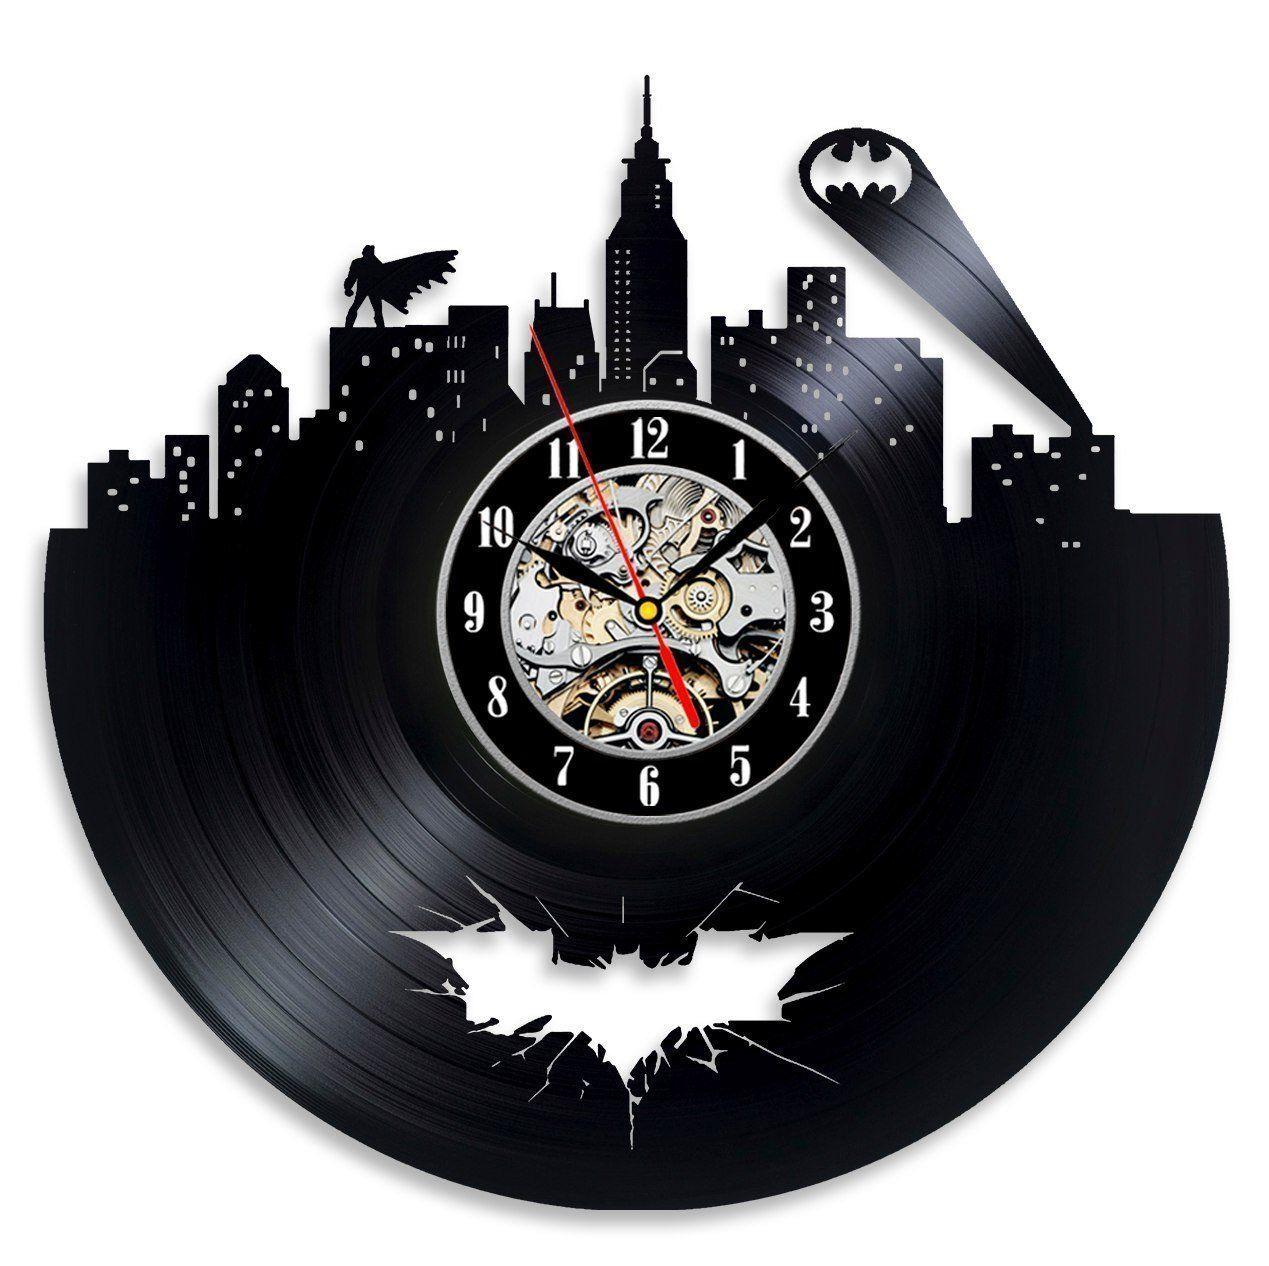 Batman arkham city logo best wall clock cheap wall clocks online batman arkham city logo best wall clock cheap wall clocks online childrens clocks from xinogbing 2463 dhgate amipublicfo Image collections